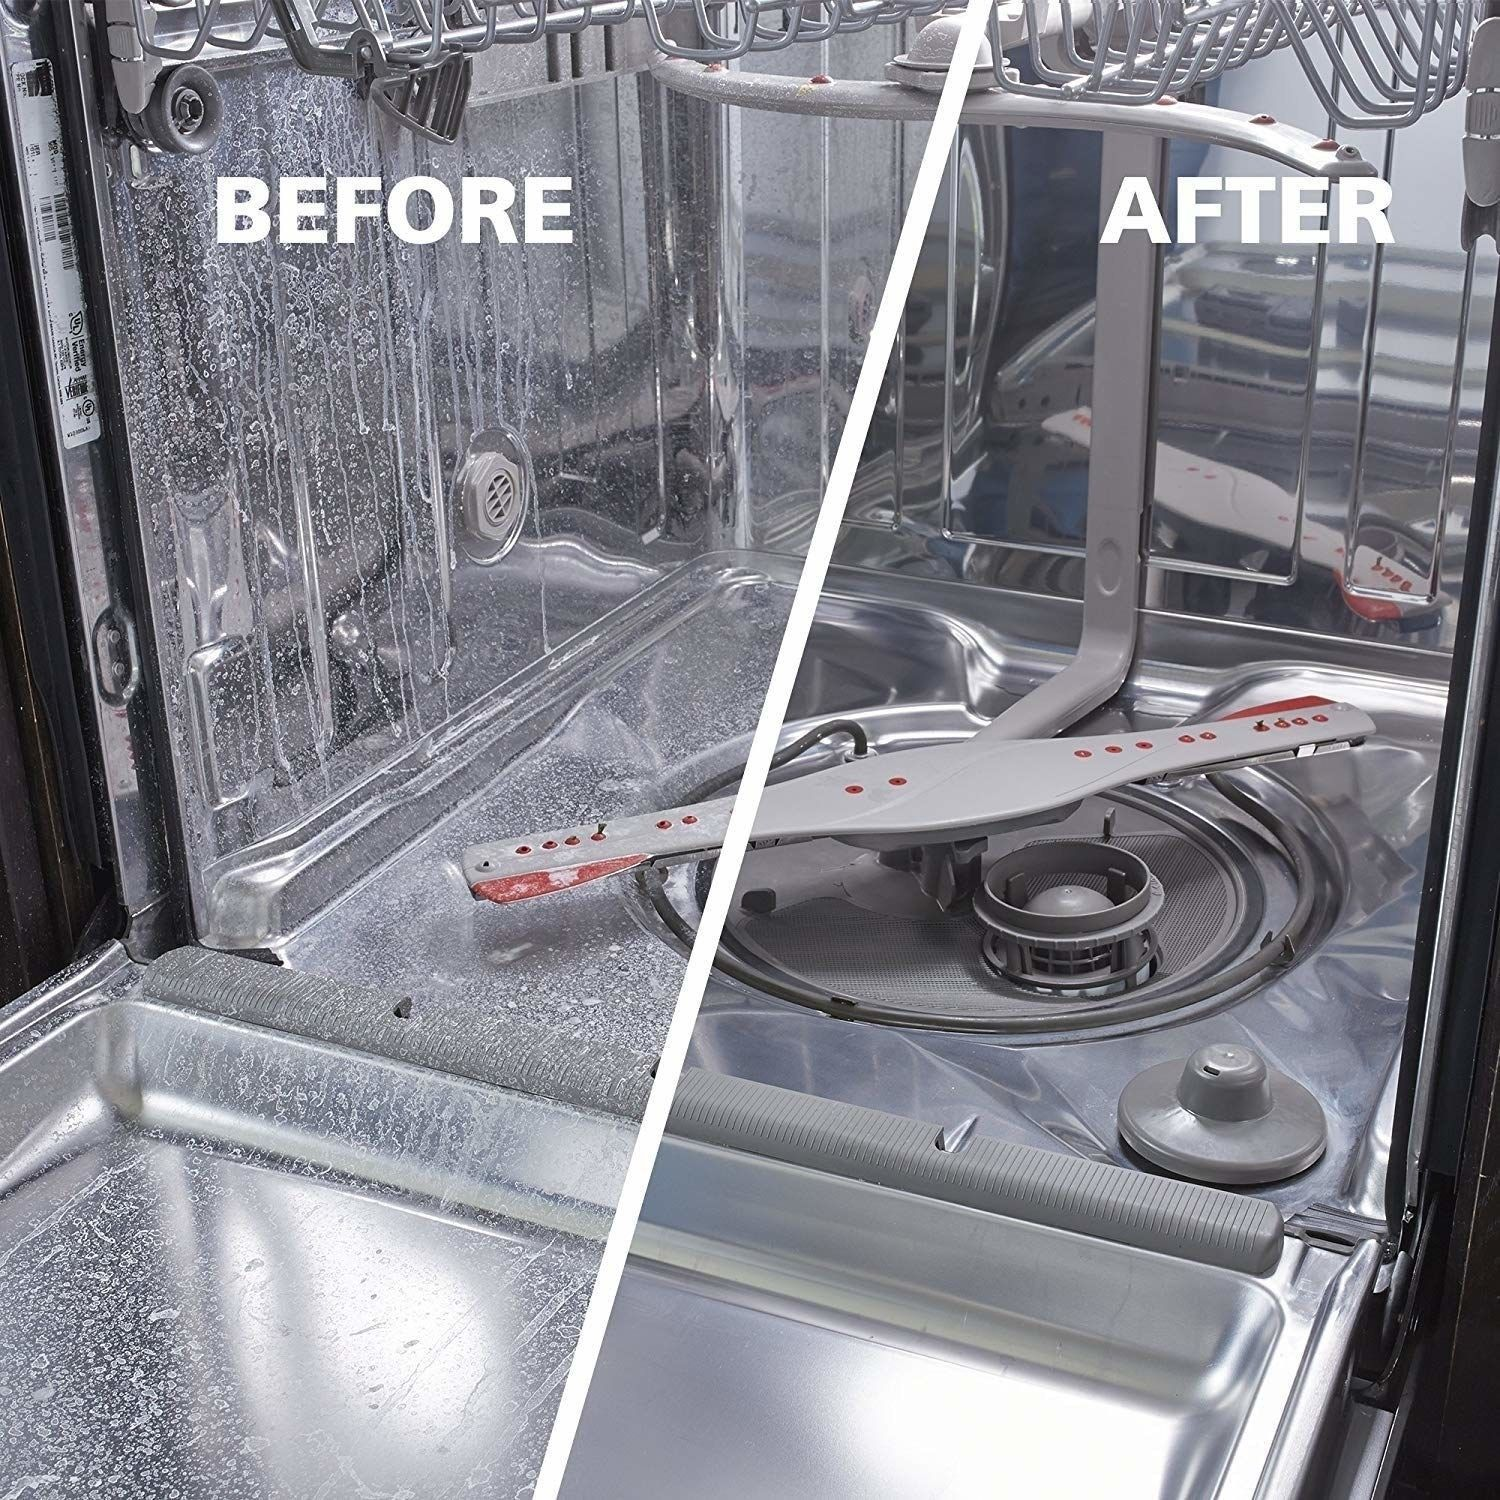 47 Cleaning Basics You Should Probably Know By Now Dishwasher Cleaner Dishwasher Cleaning